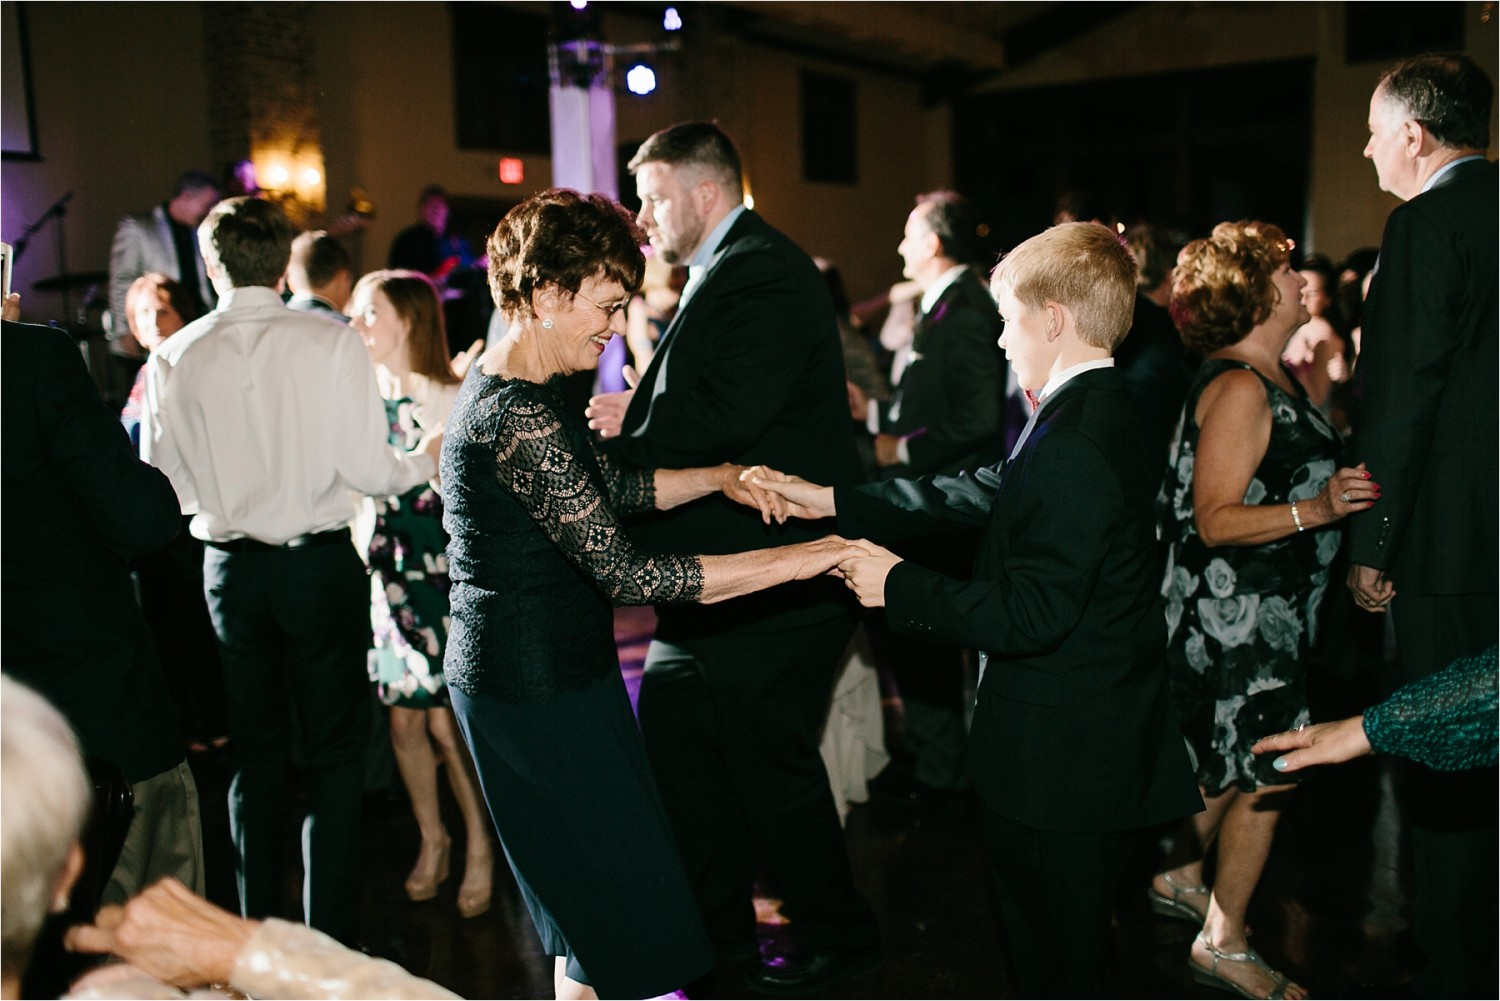 brad-lara-__-a-grey-and-blush-pink-intimate-wedding-at-hidden-waters-event-center-in-waxahachie-tx-by-north-texas-wedding-photographer-rachel-meagan-photography-_-089